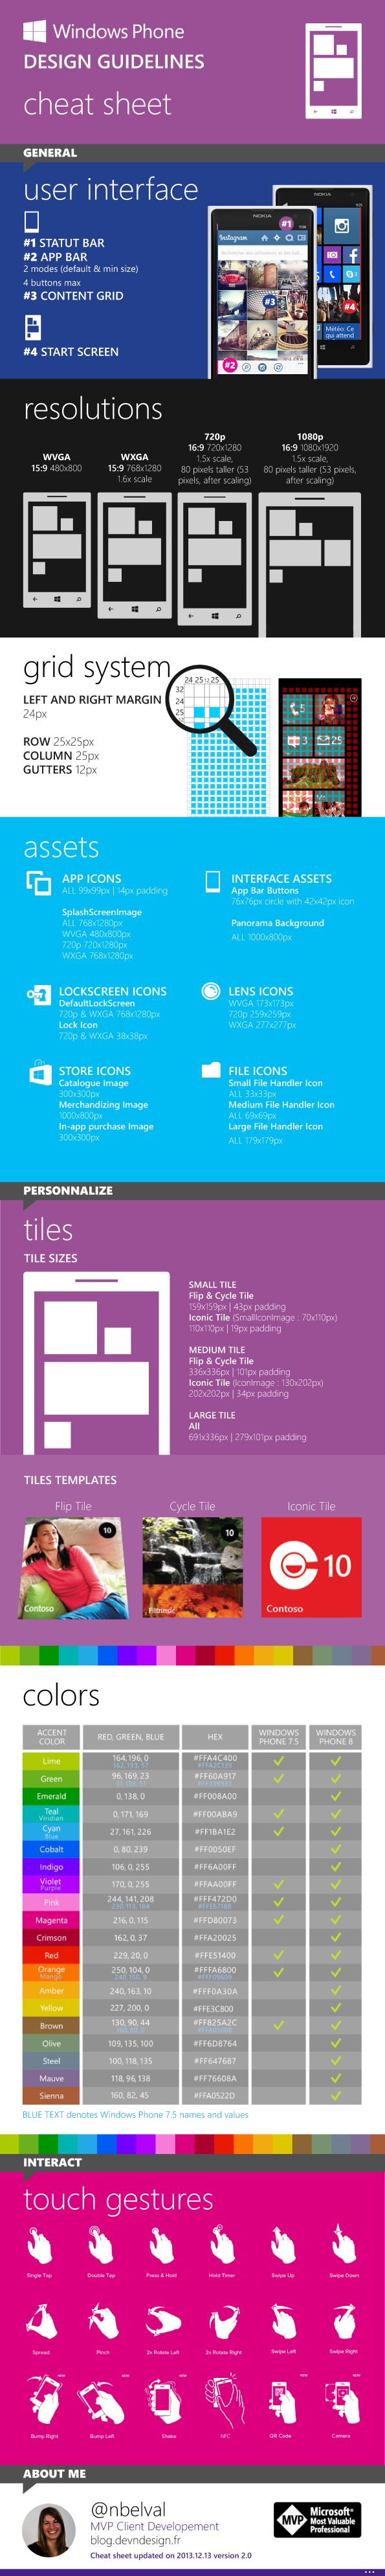 Windows Phone design guidelines cheat sheet